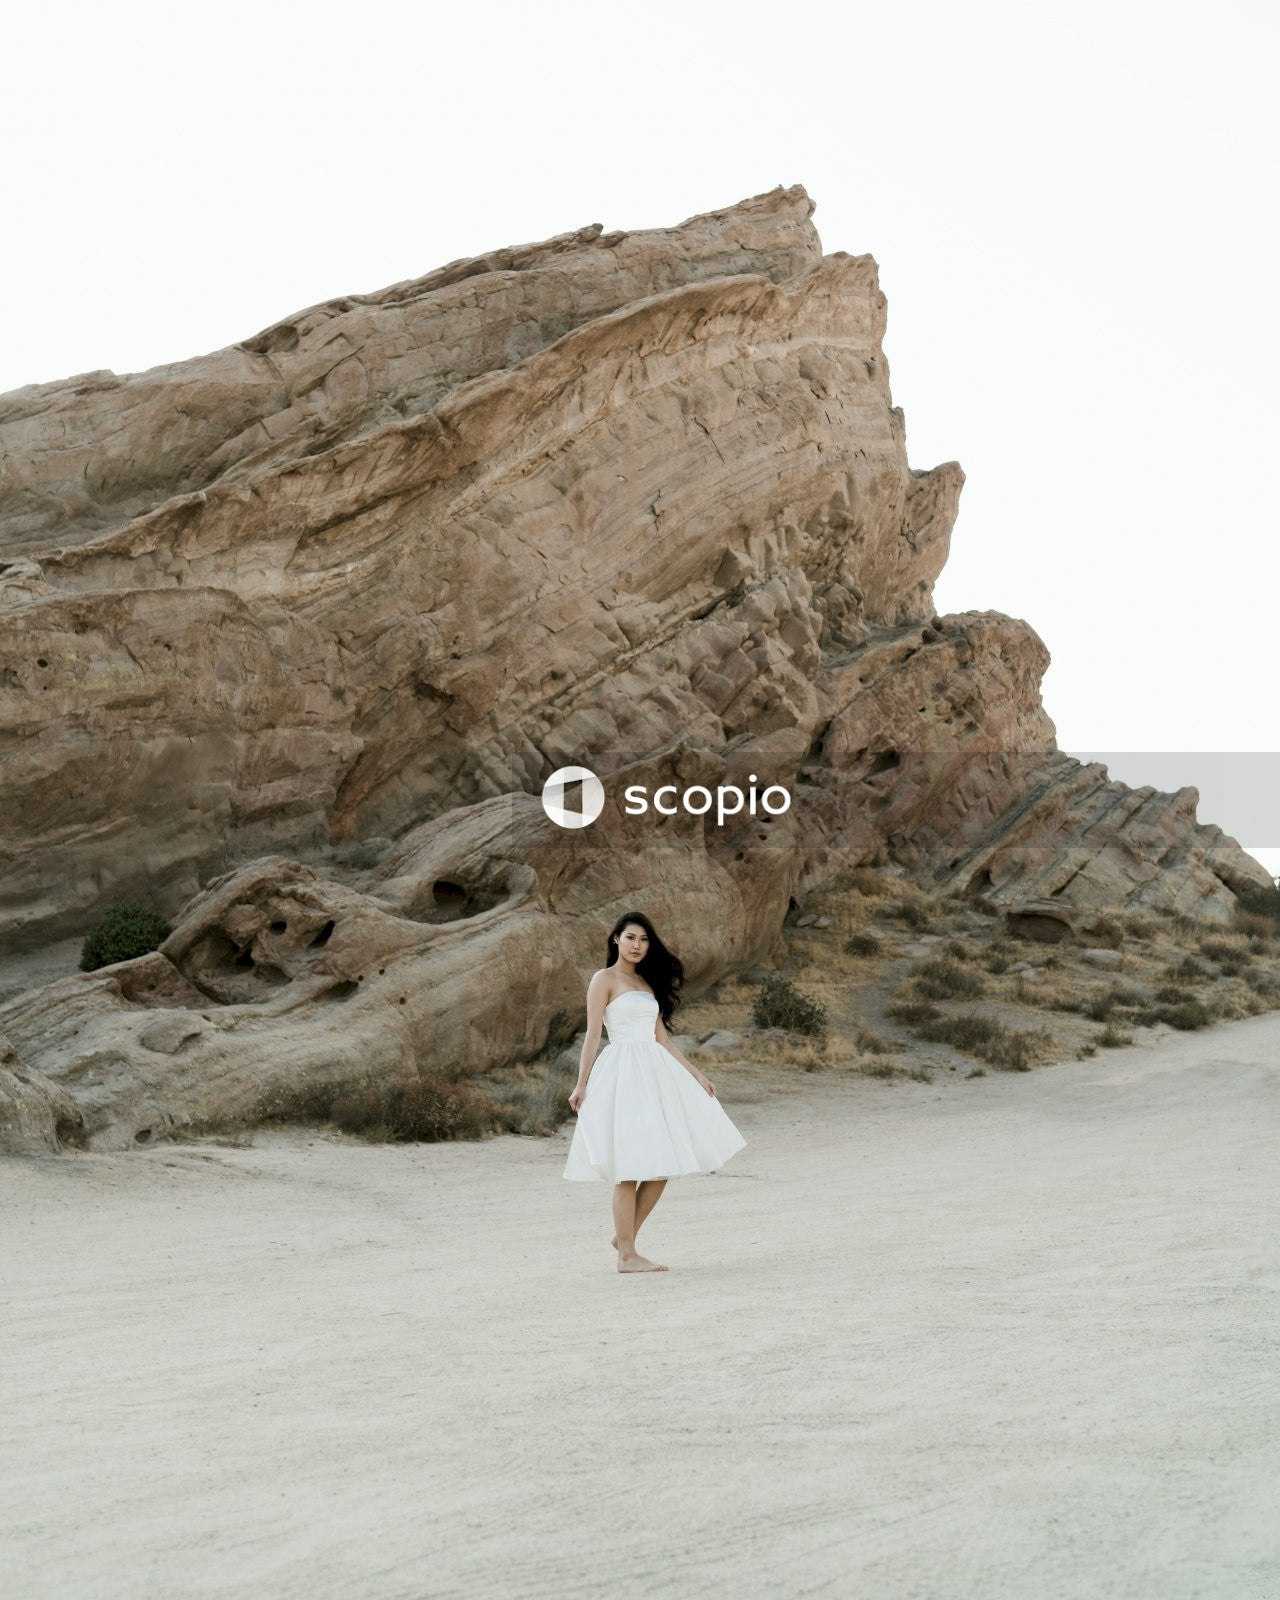 Woman in white dress standing on white sand near brown rock formation